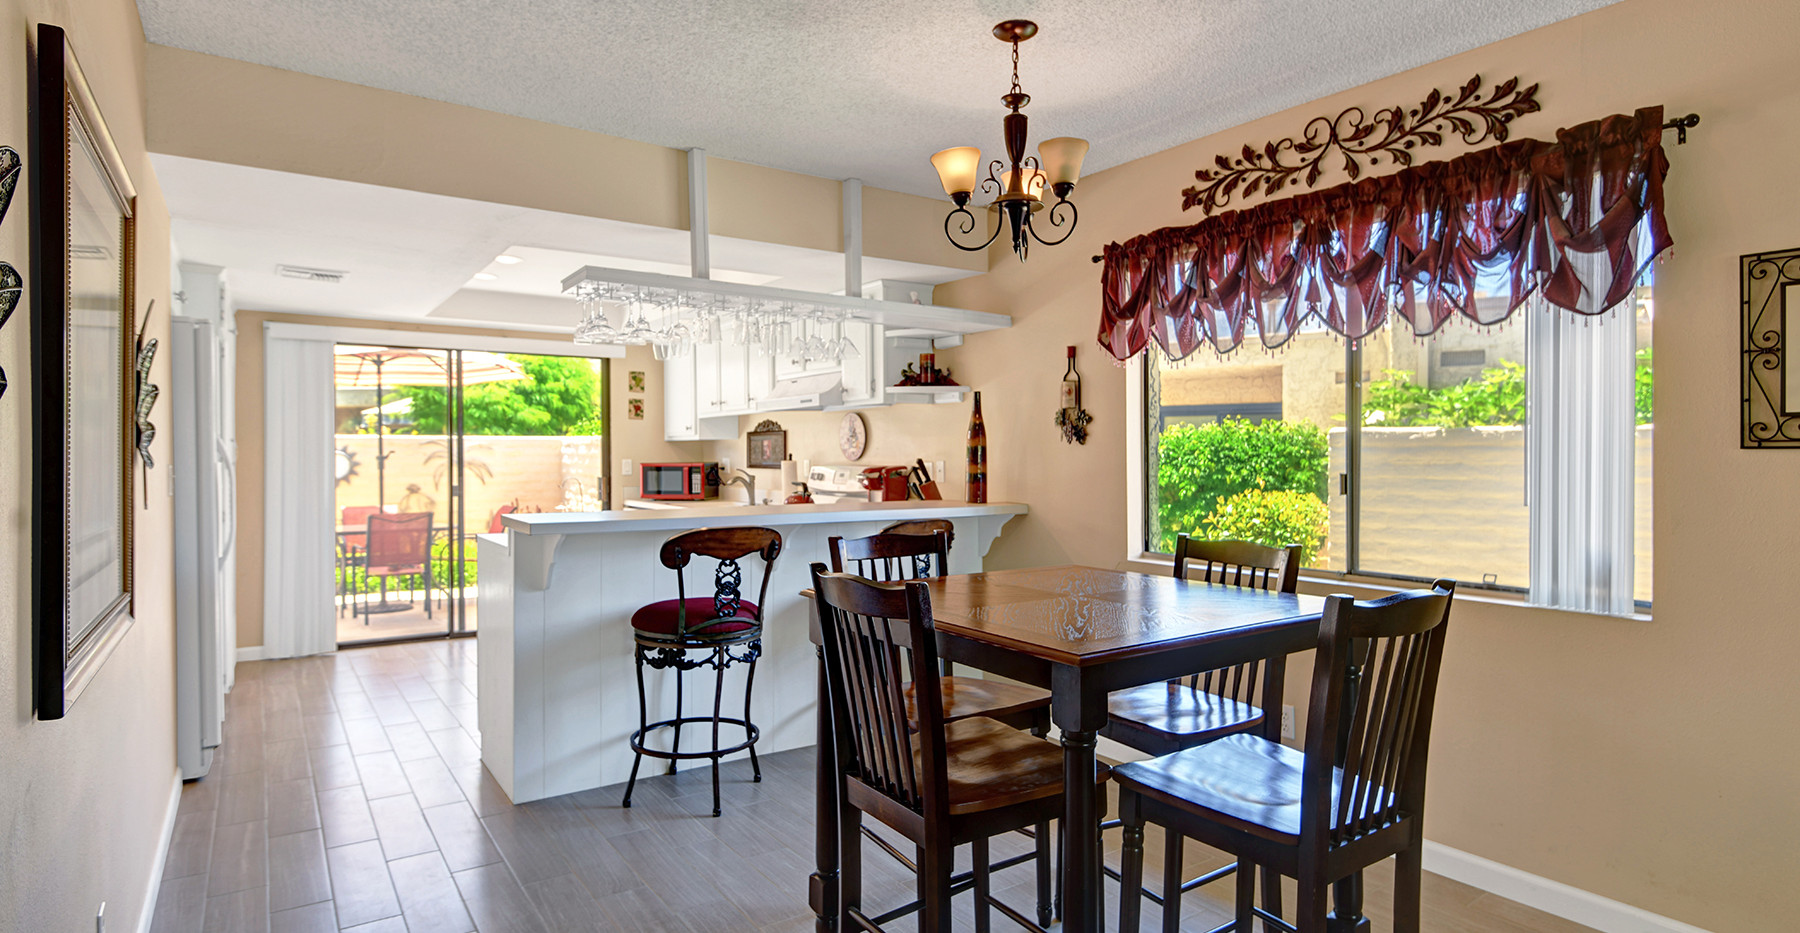 DINING ROOM TO KITCHEN MLS.jpg